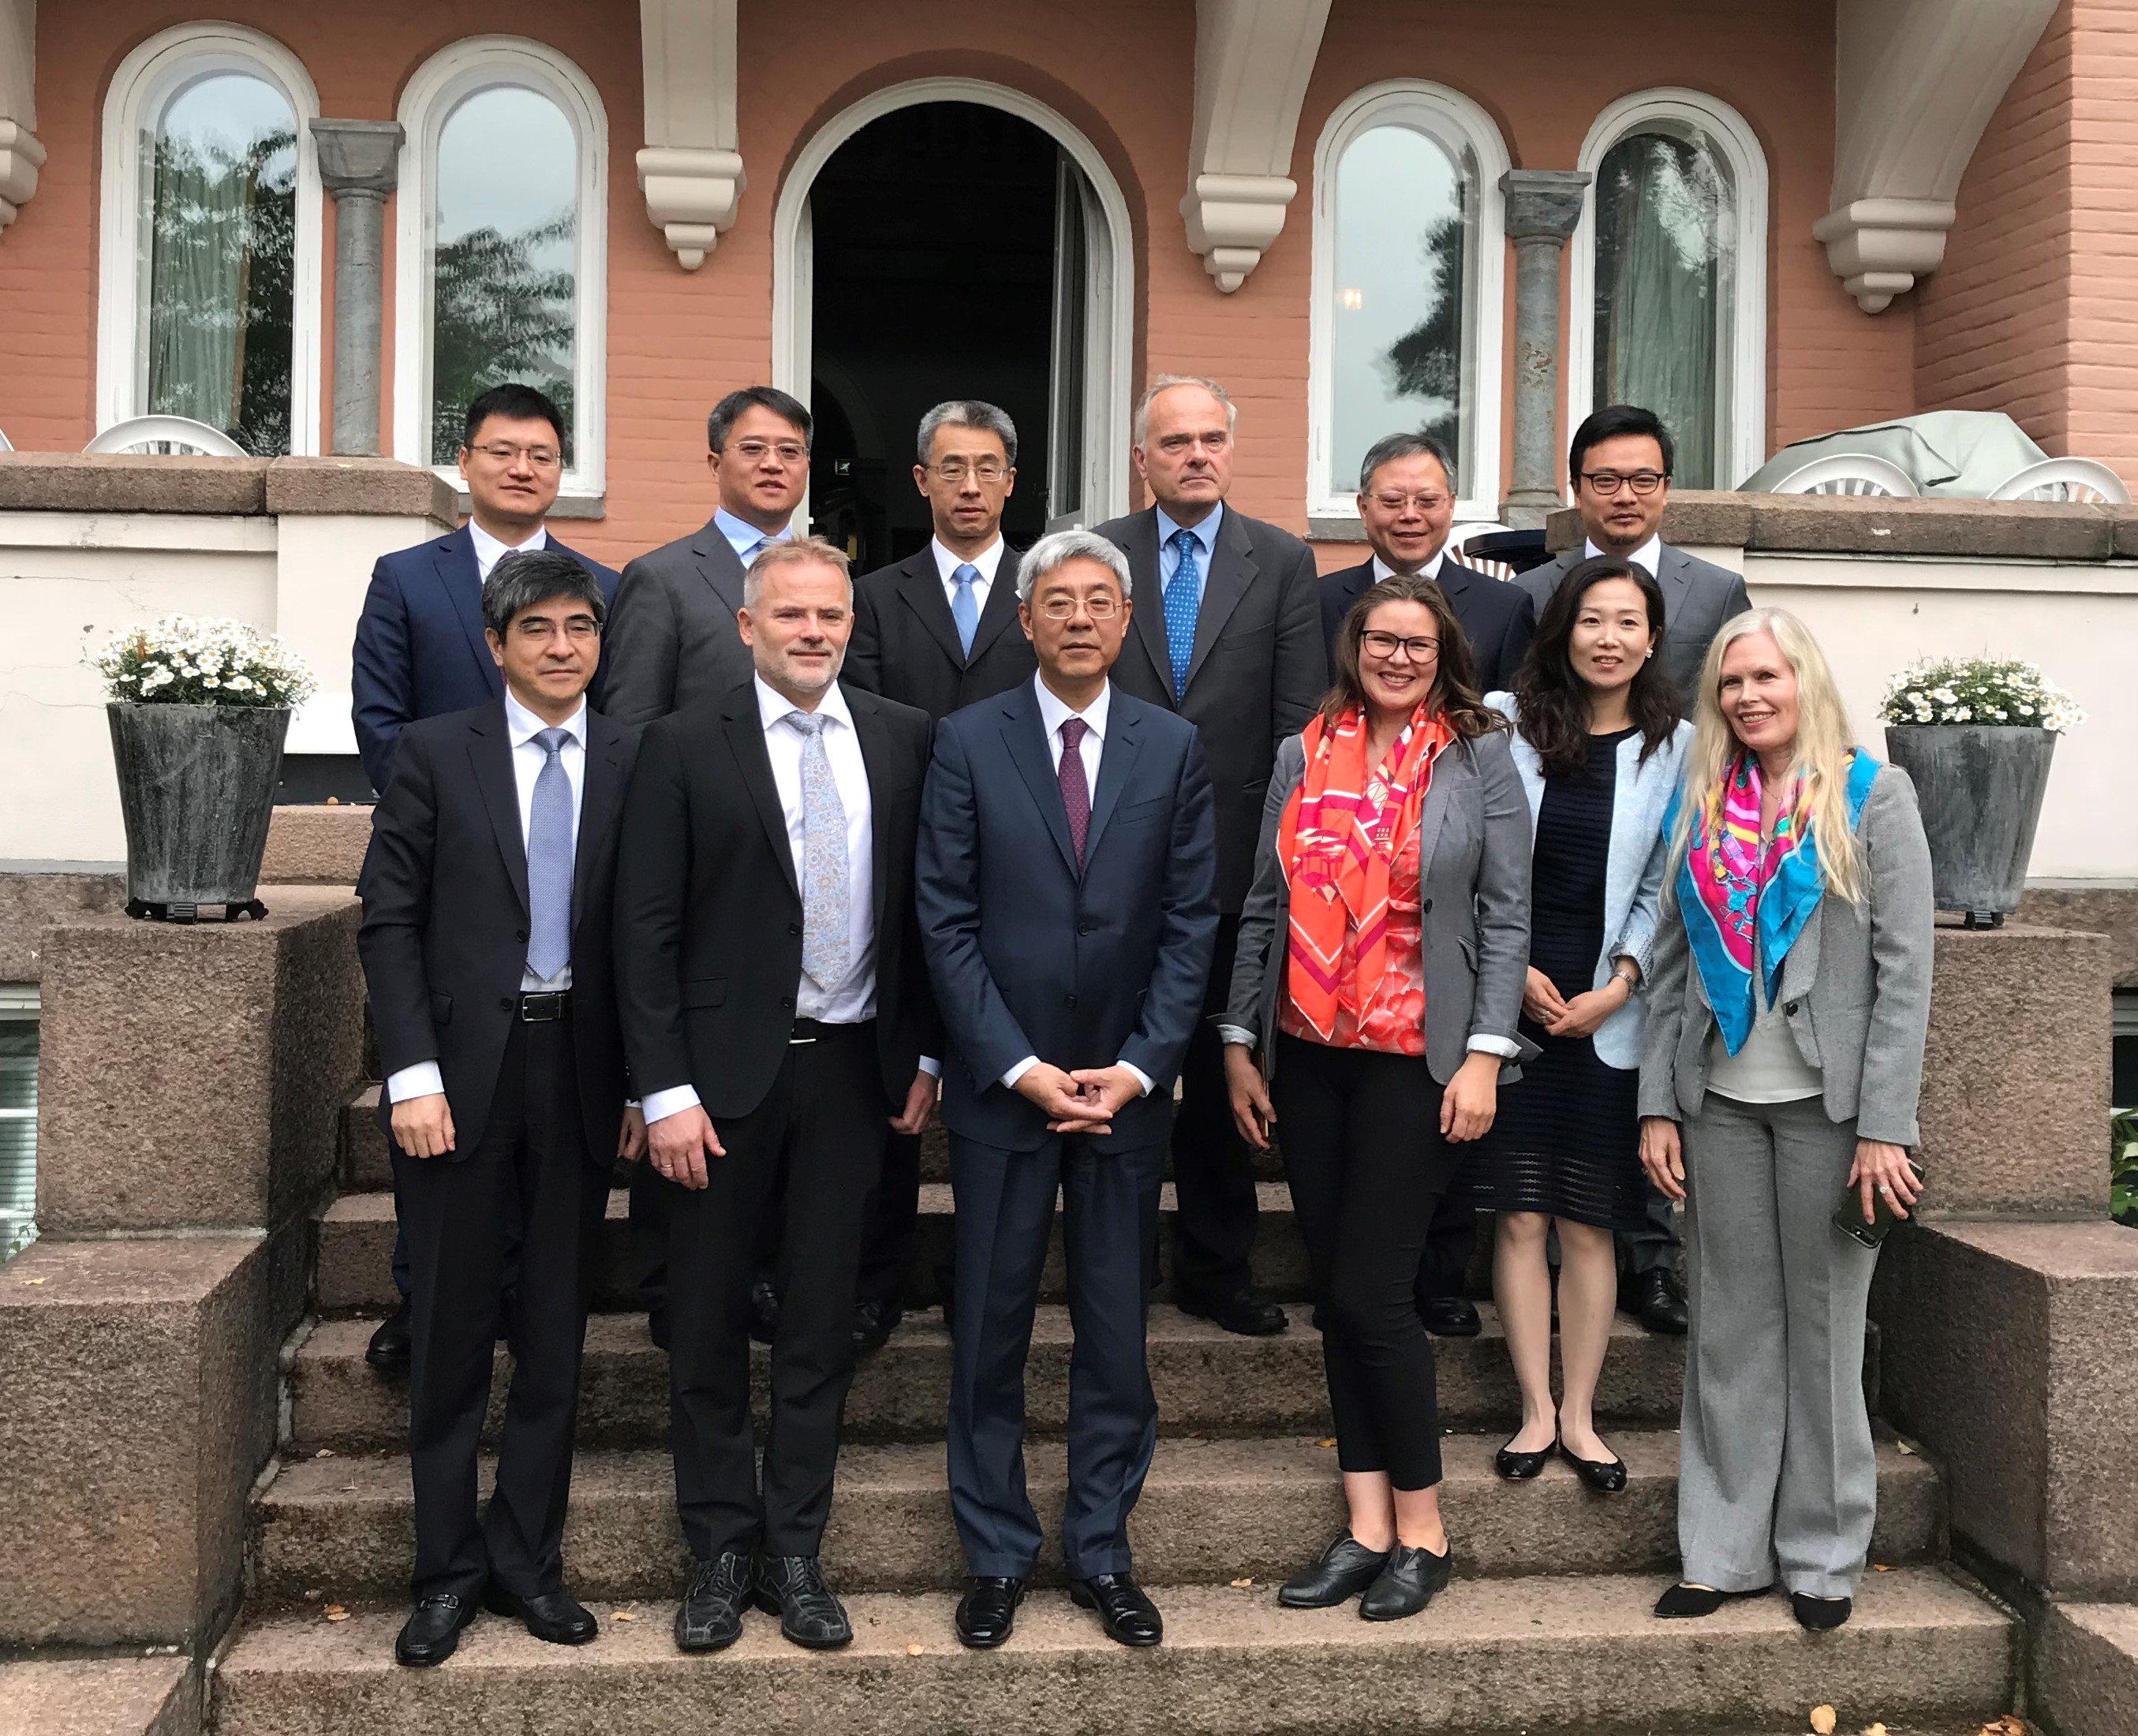 Shanghai high-level delegation on the stairs of Polhøgda (Photo: Claes Lykke Ragner)